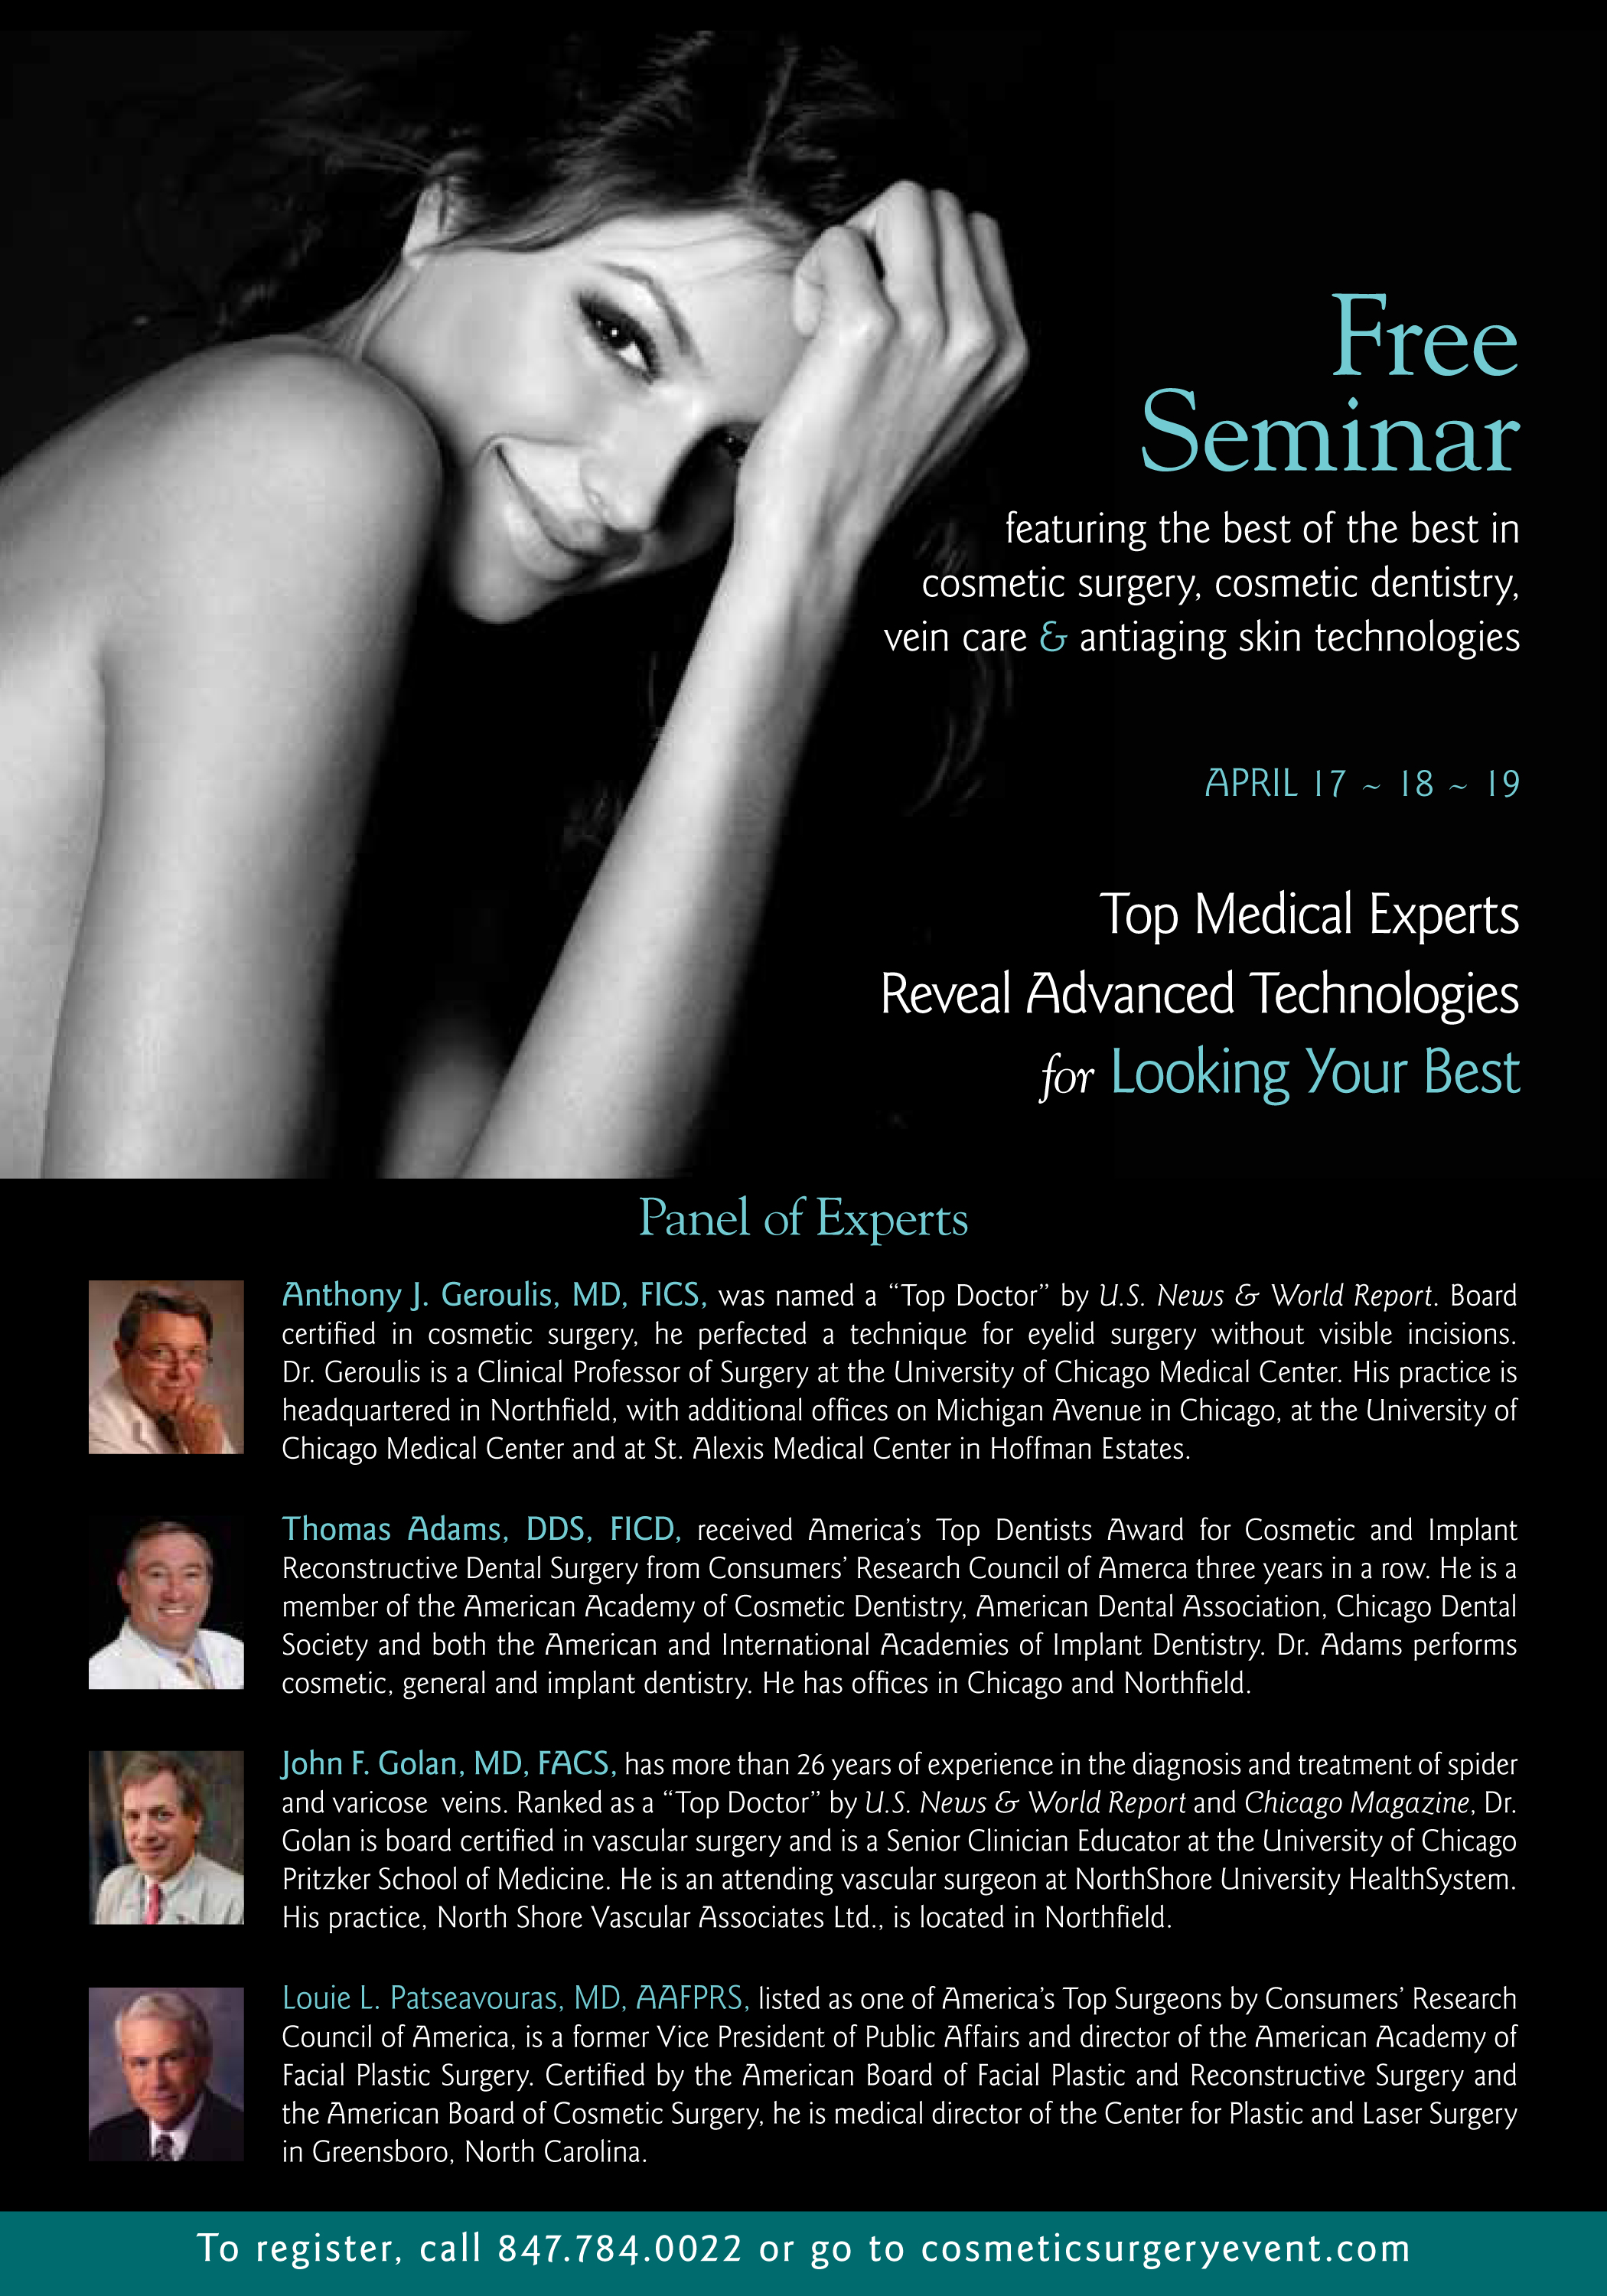 facelifts  eyelids  liposculpture  hear about cosmetic